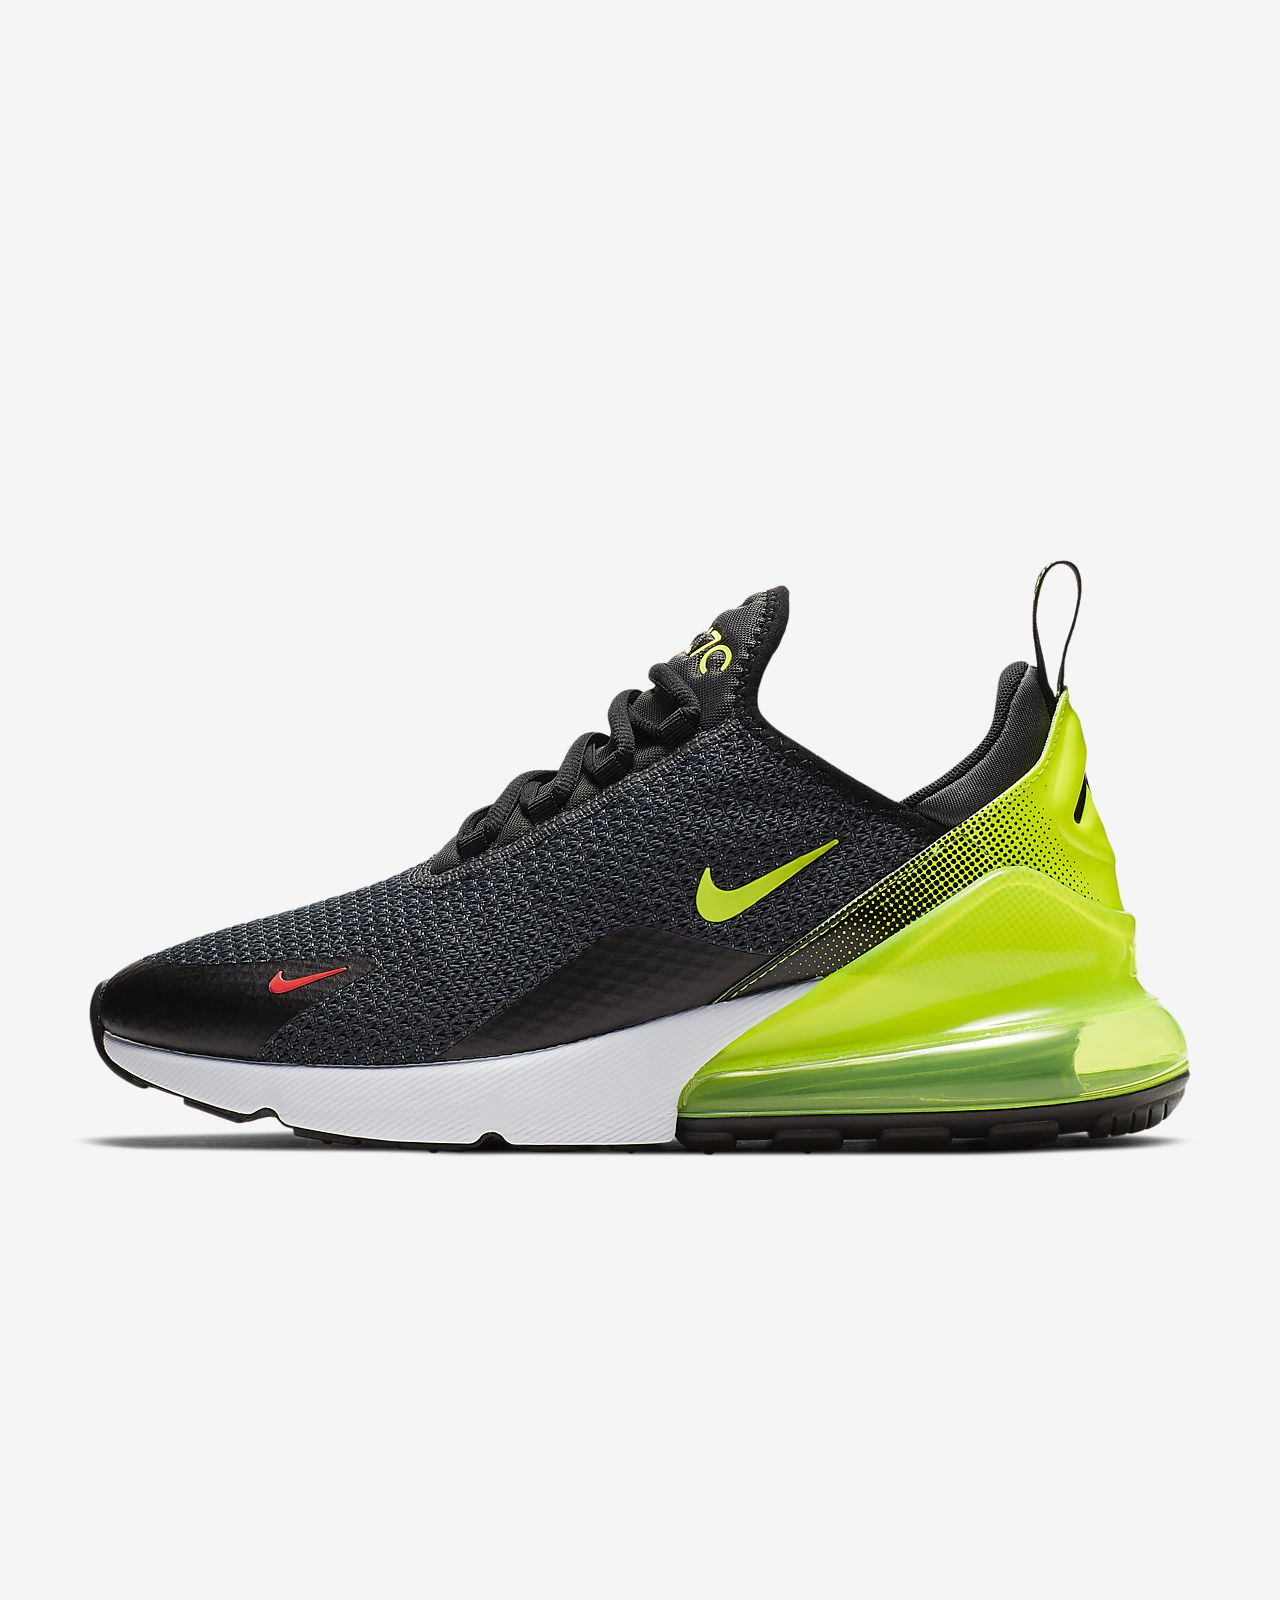 cheap for discount 74a79 a5ca5 ... Nike Air Max 270 SE Men s Shoe